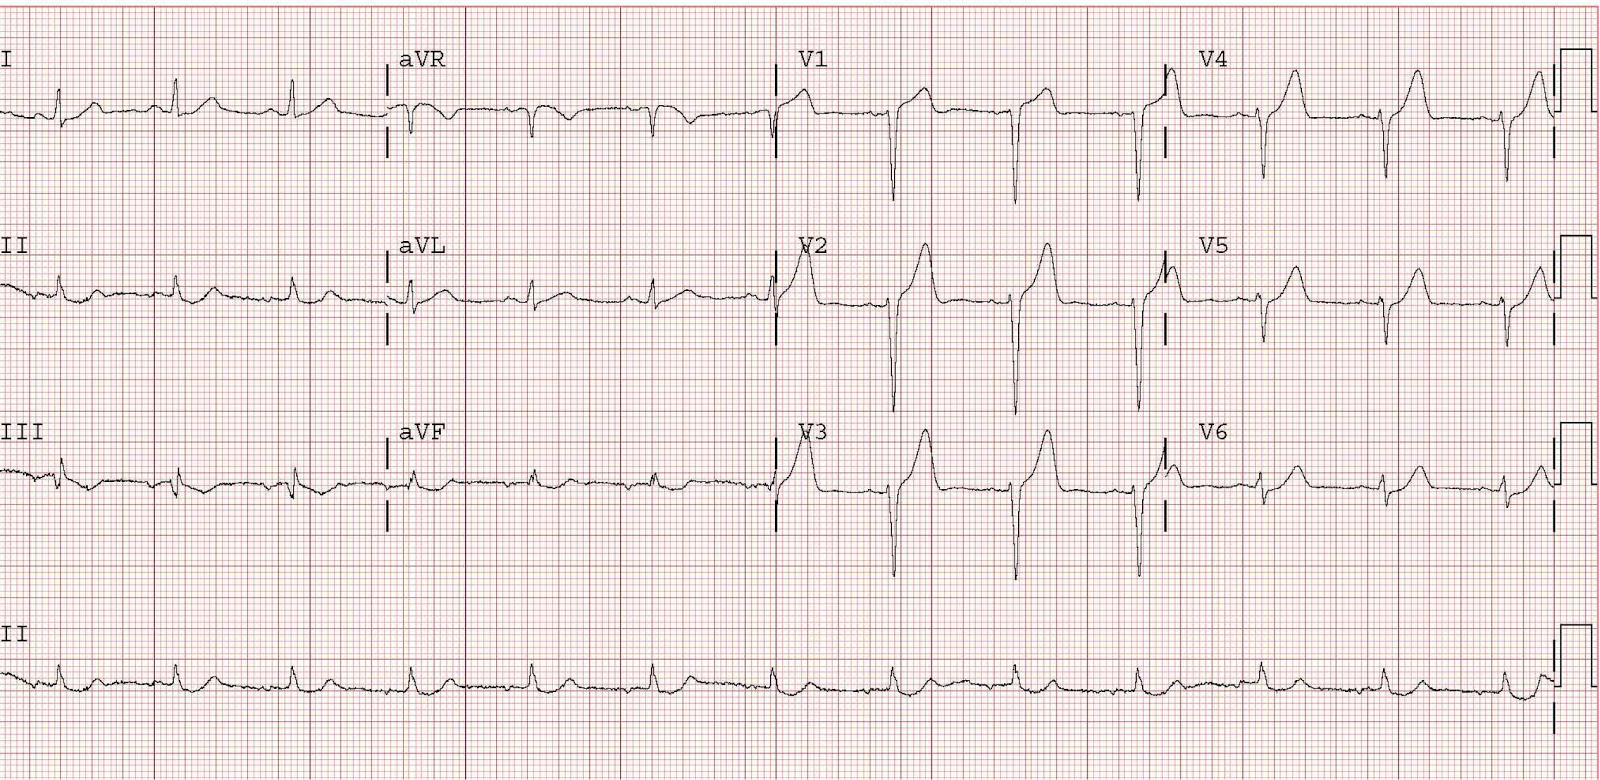 This is from Dr. Smith's ECG blog and is not the ECG from the cited article, though it illustrates the same point. This tracing is a 46 year old with chest pain. It does not have R-wave regression, but it does have poor R wave progression. Click image for source link.